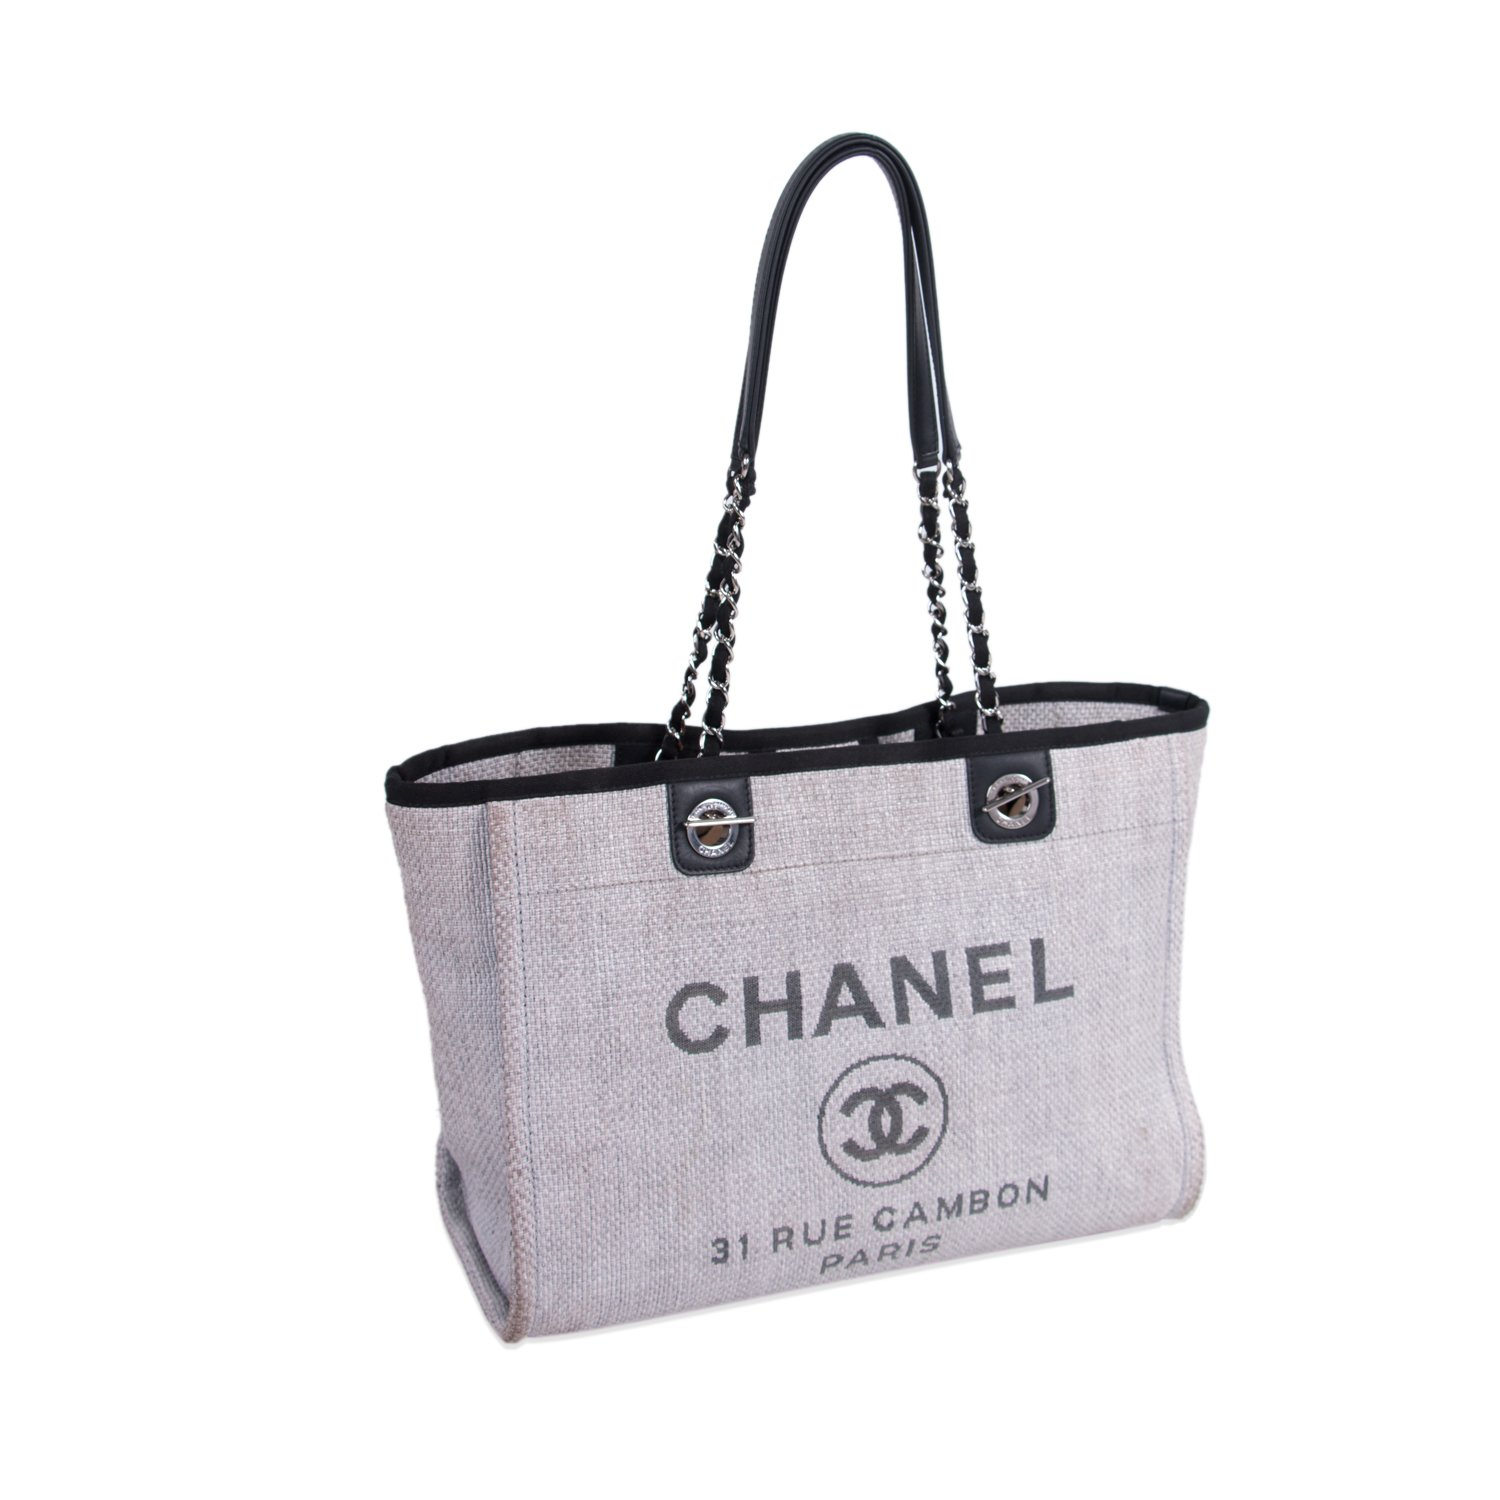 834ce10ceaaf CHANEL LIGHT GREY CANVAS SMALL DEAUVILLE TOTE